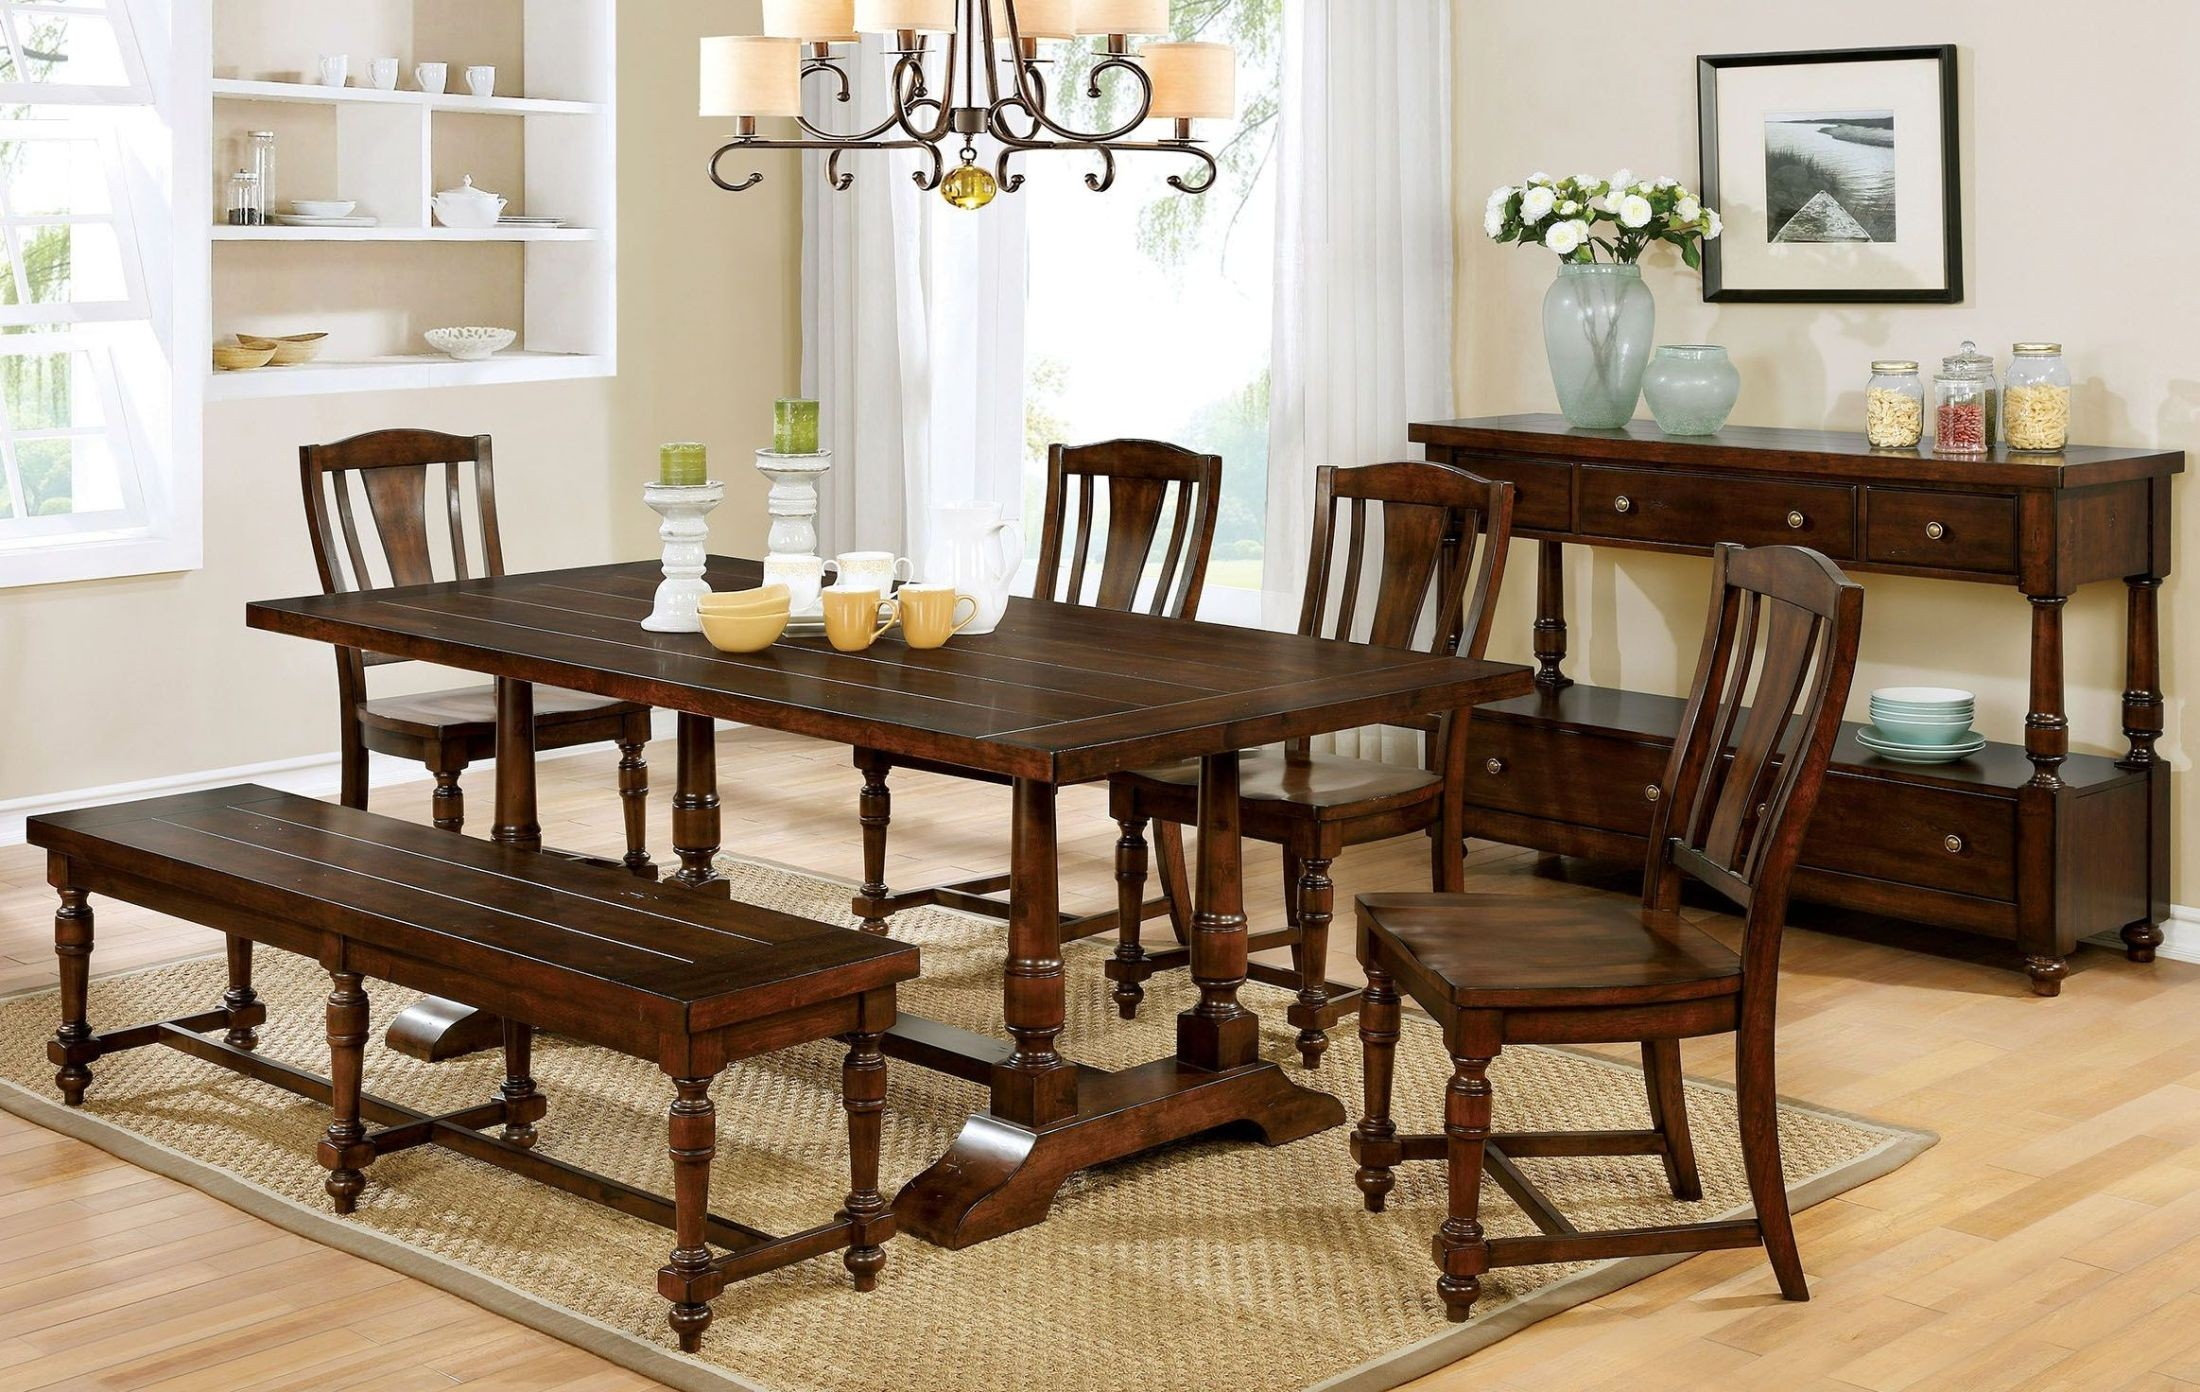 Griselda brown cherry rectangular dining room set from for Cherry dining room